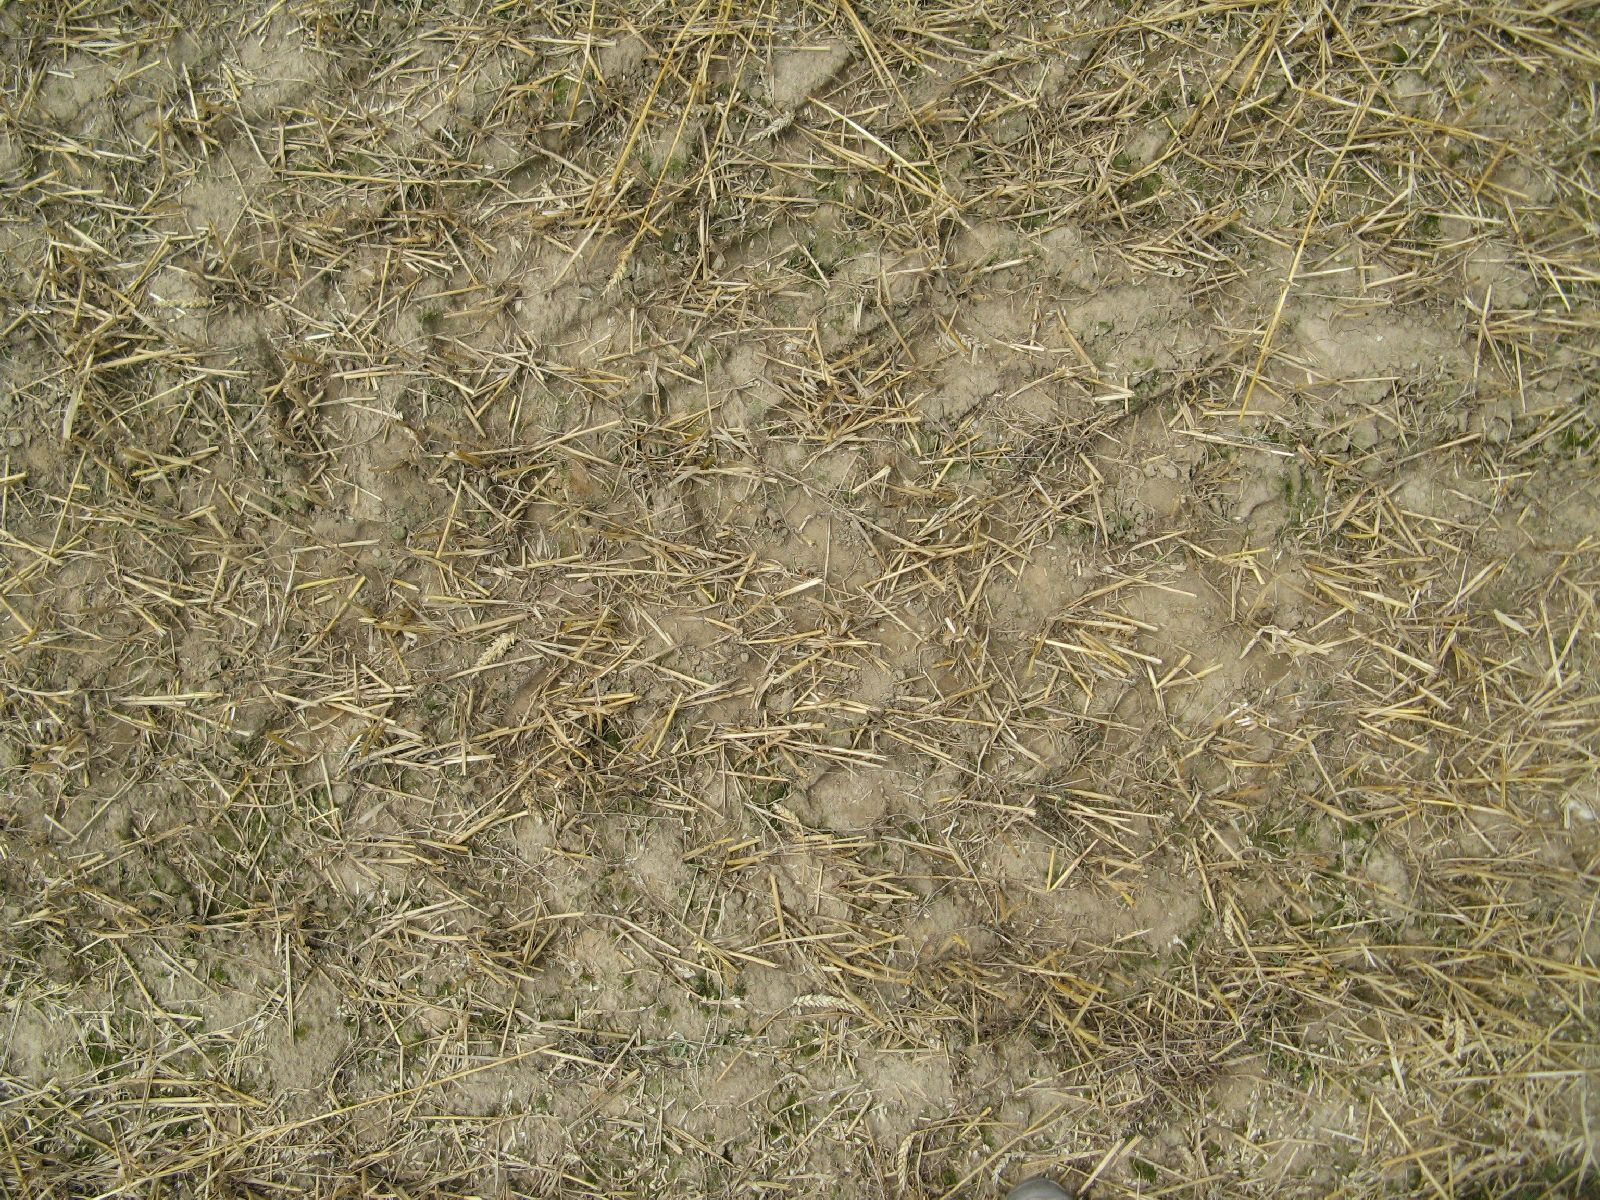 Ground-Nature_Texture_B_01020